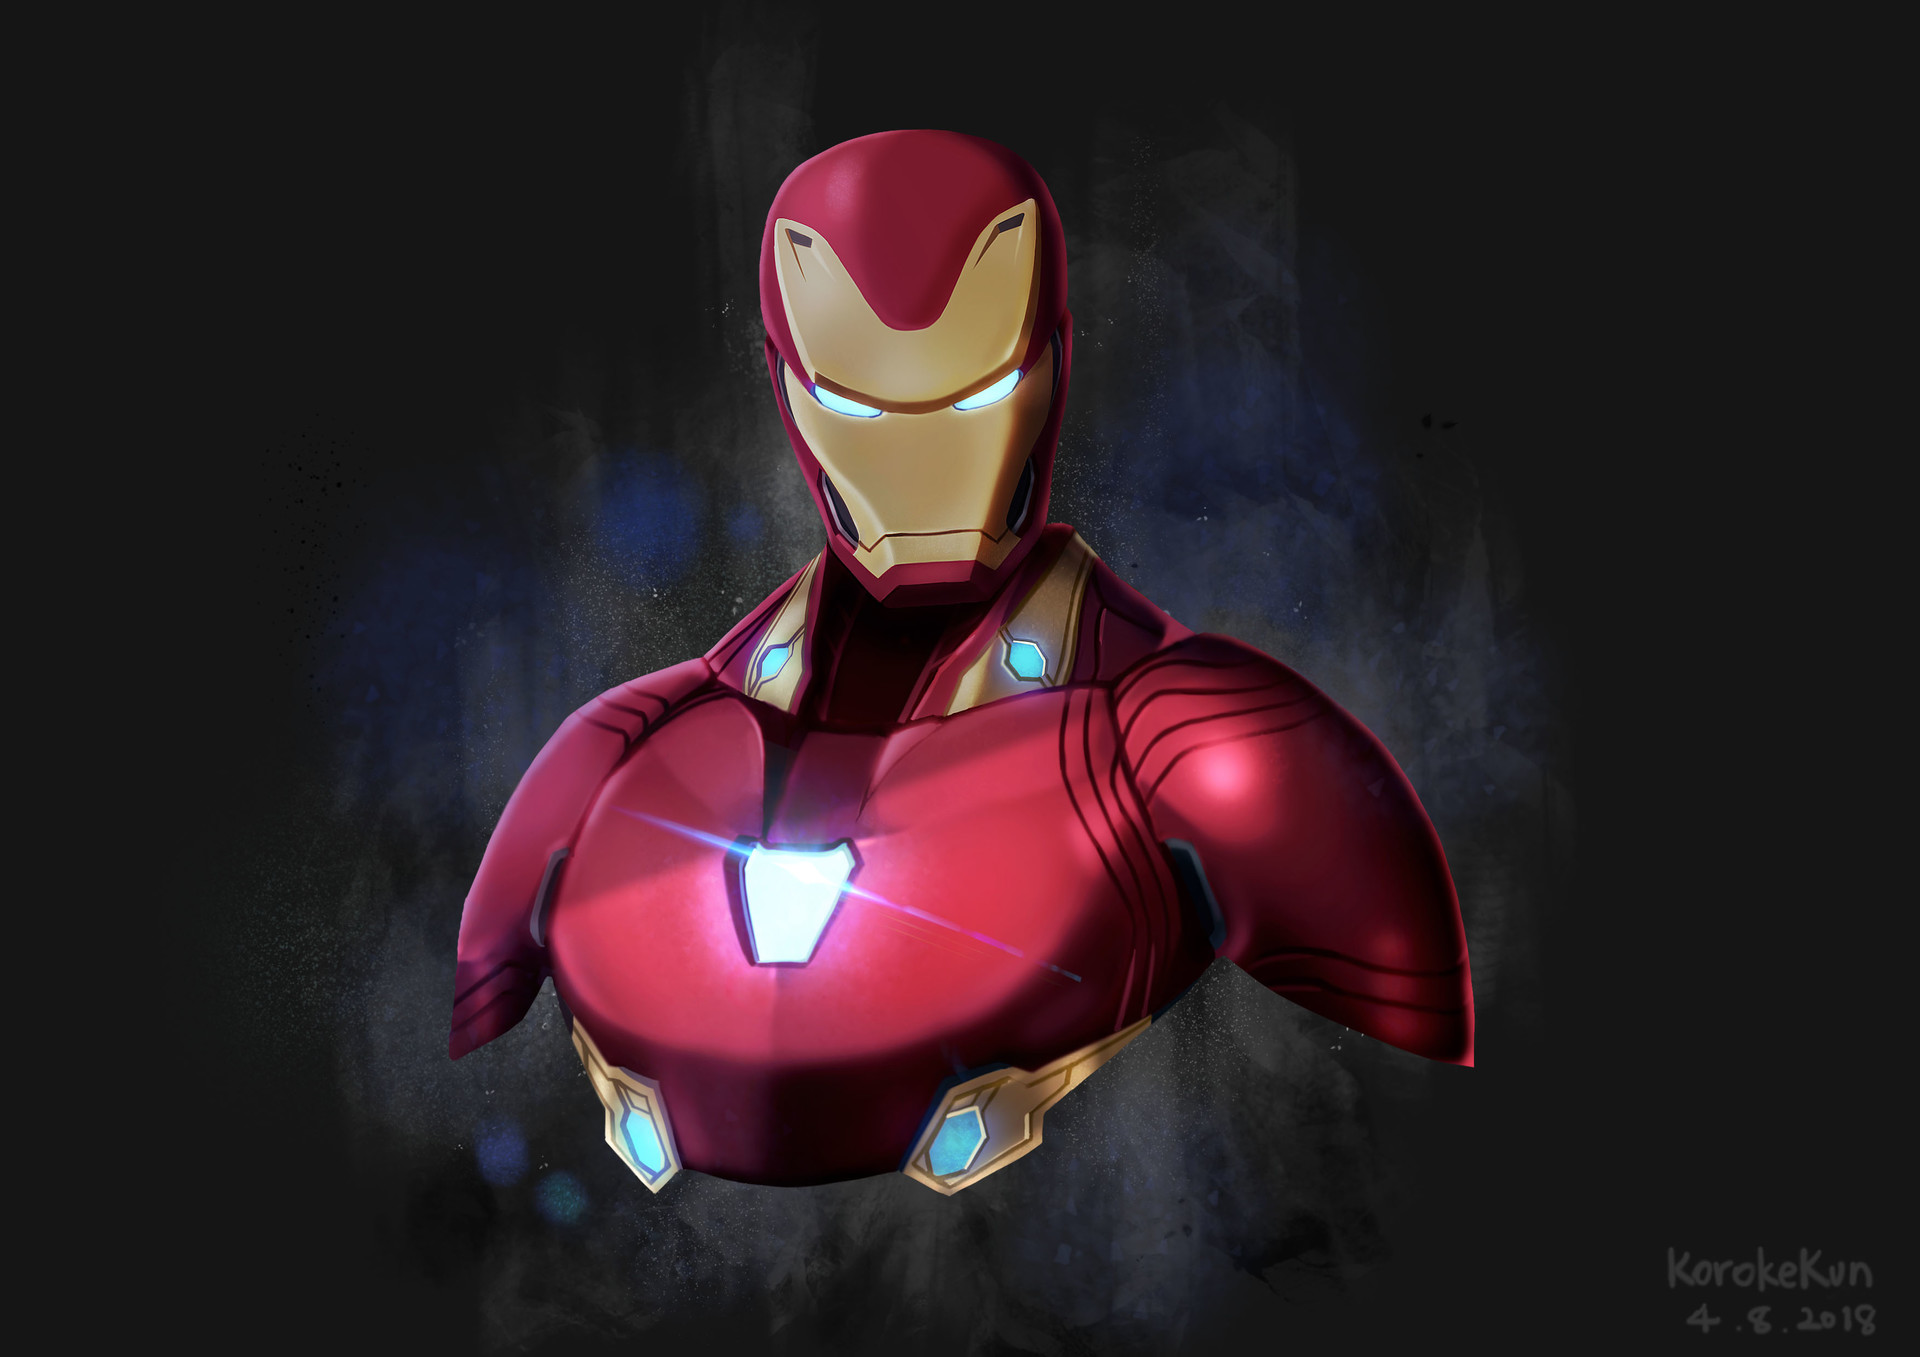 960x540 Iron Man Avengers Infinity War Artwork 960x540